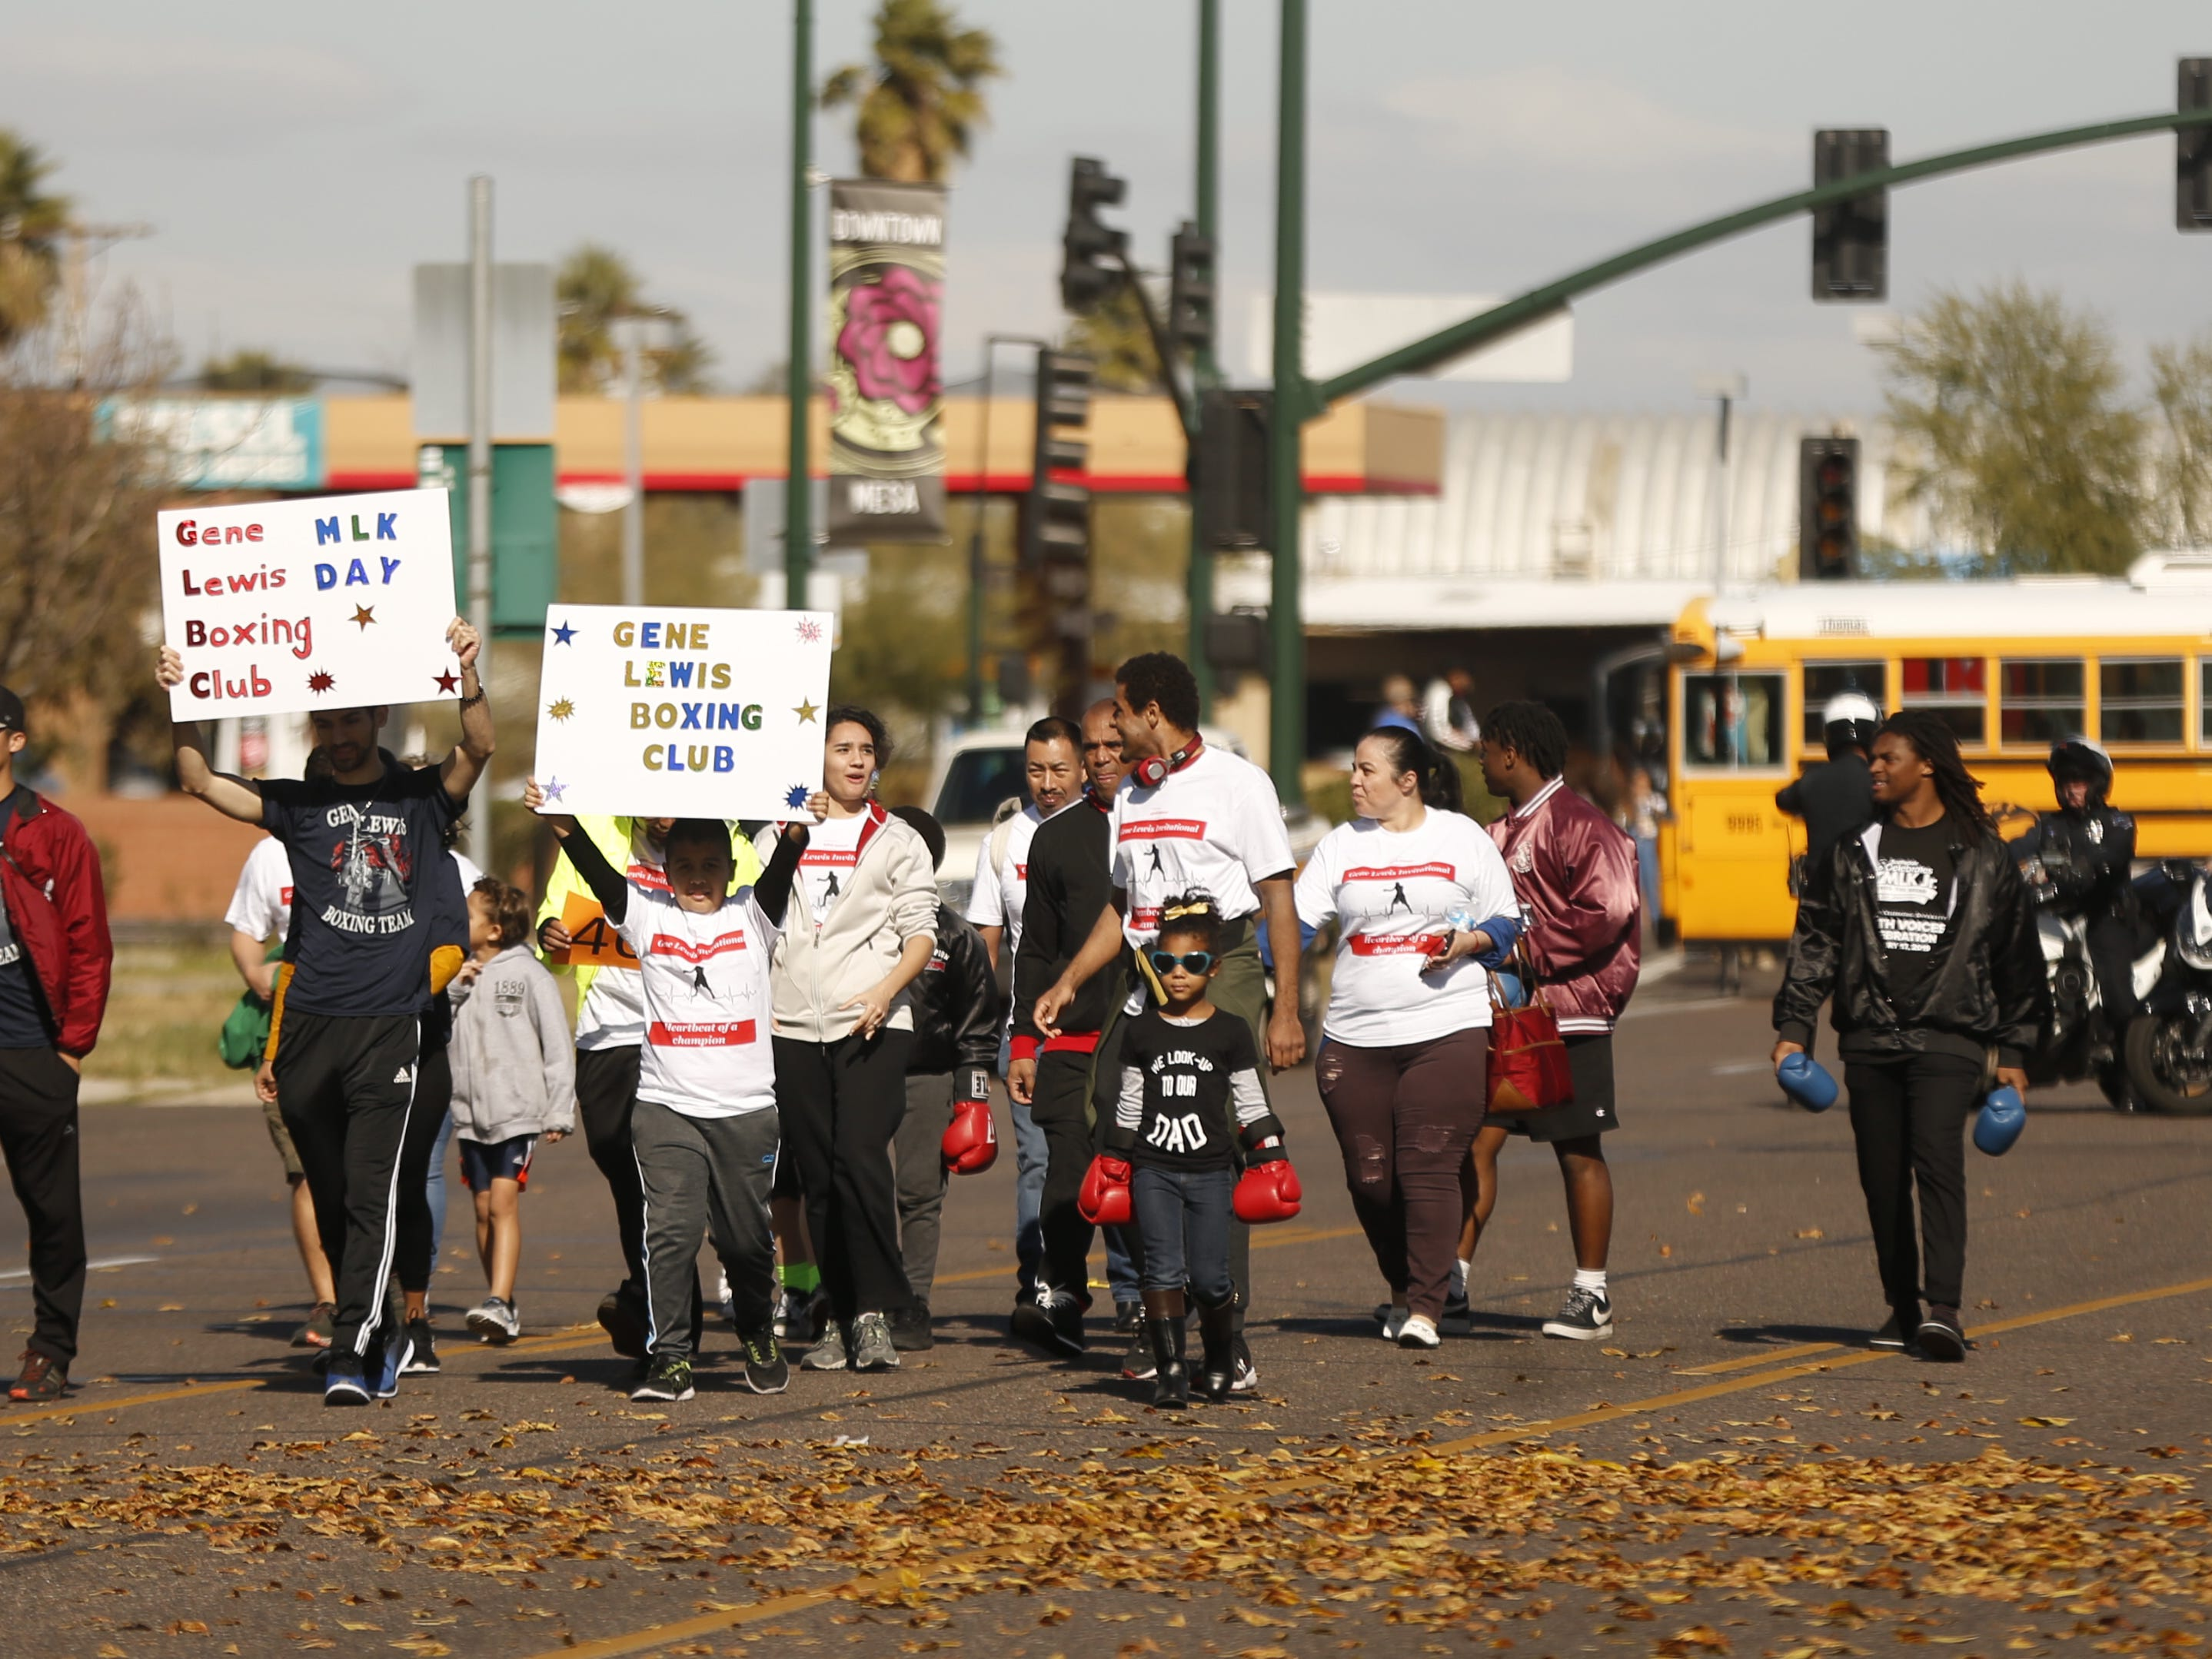 Gene Lewis Boxing Club marches during the MLK Day Parade in Mesa, Ariz. on January 21, 2019.